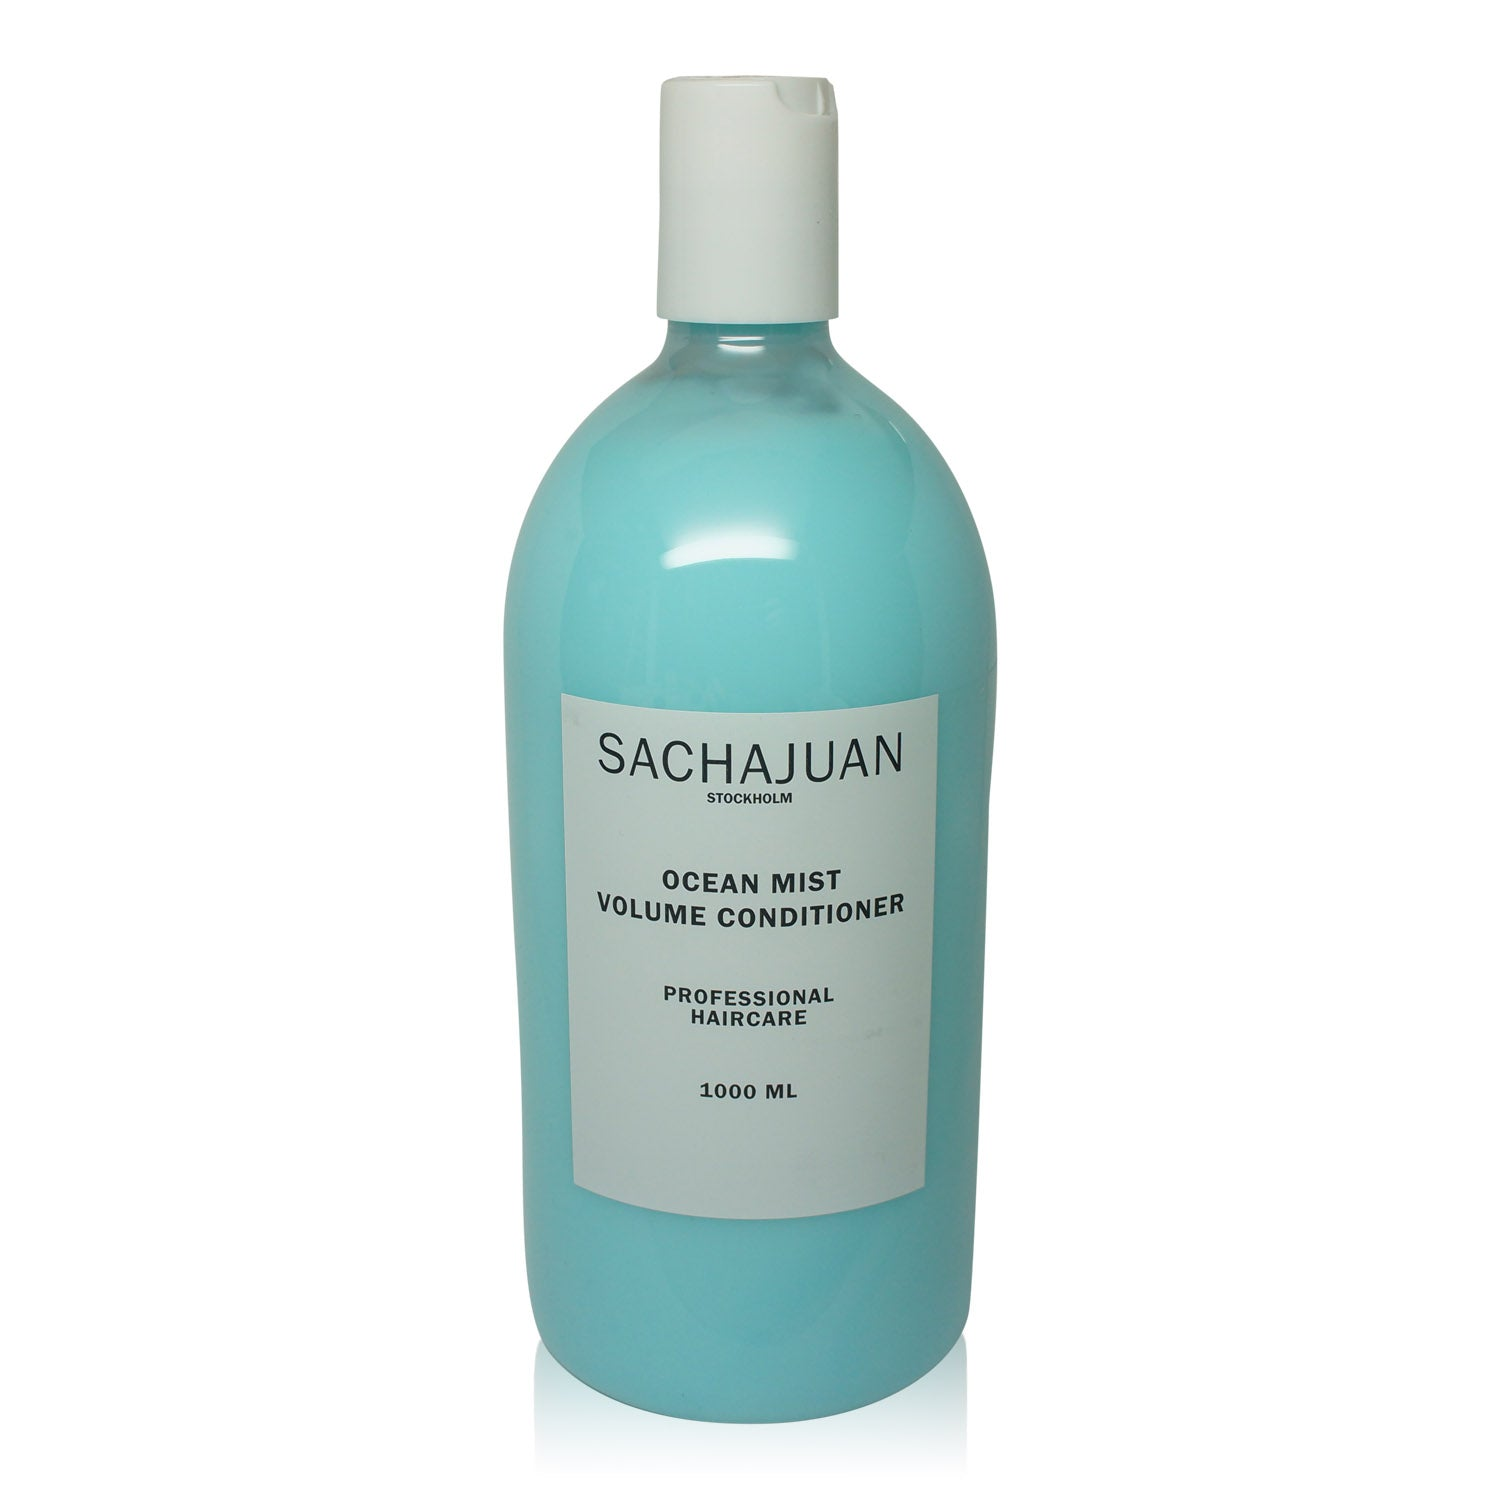 SACHAJUAN ~ OCEAN MIST VOLUME CONDITIONER ~ 1000 ML